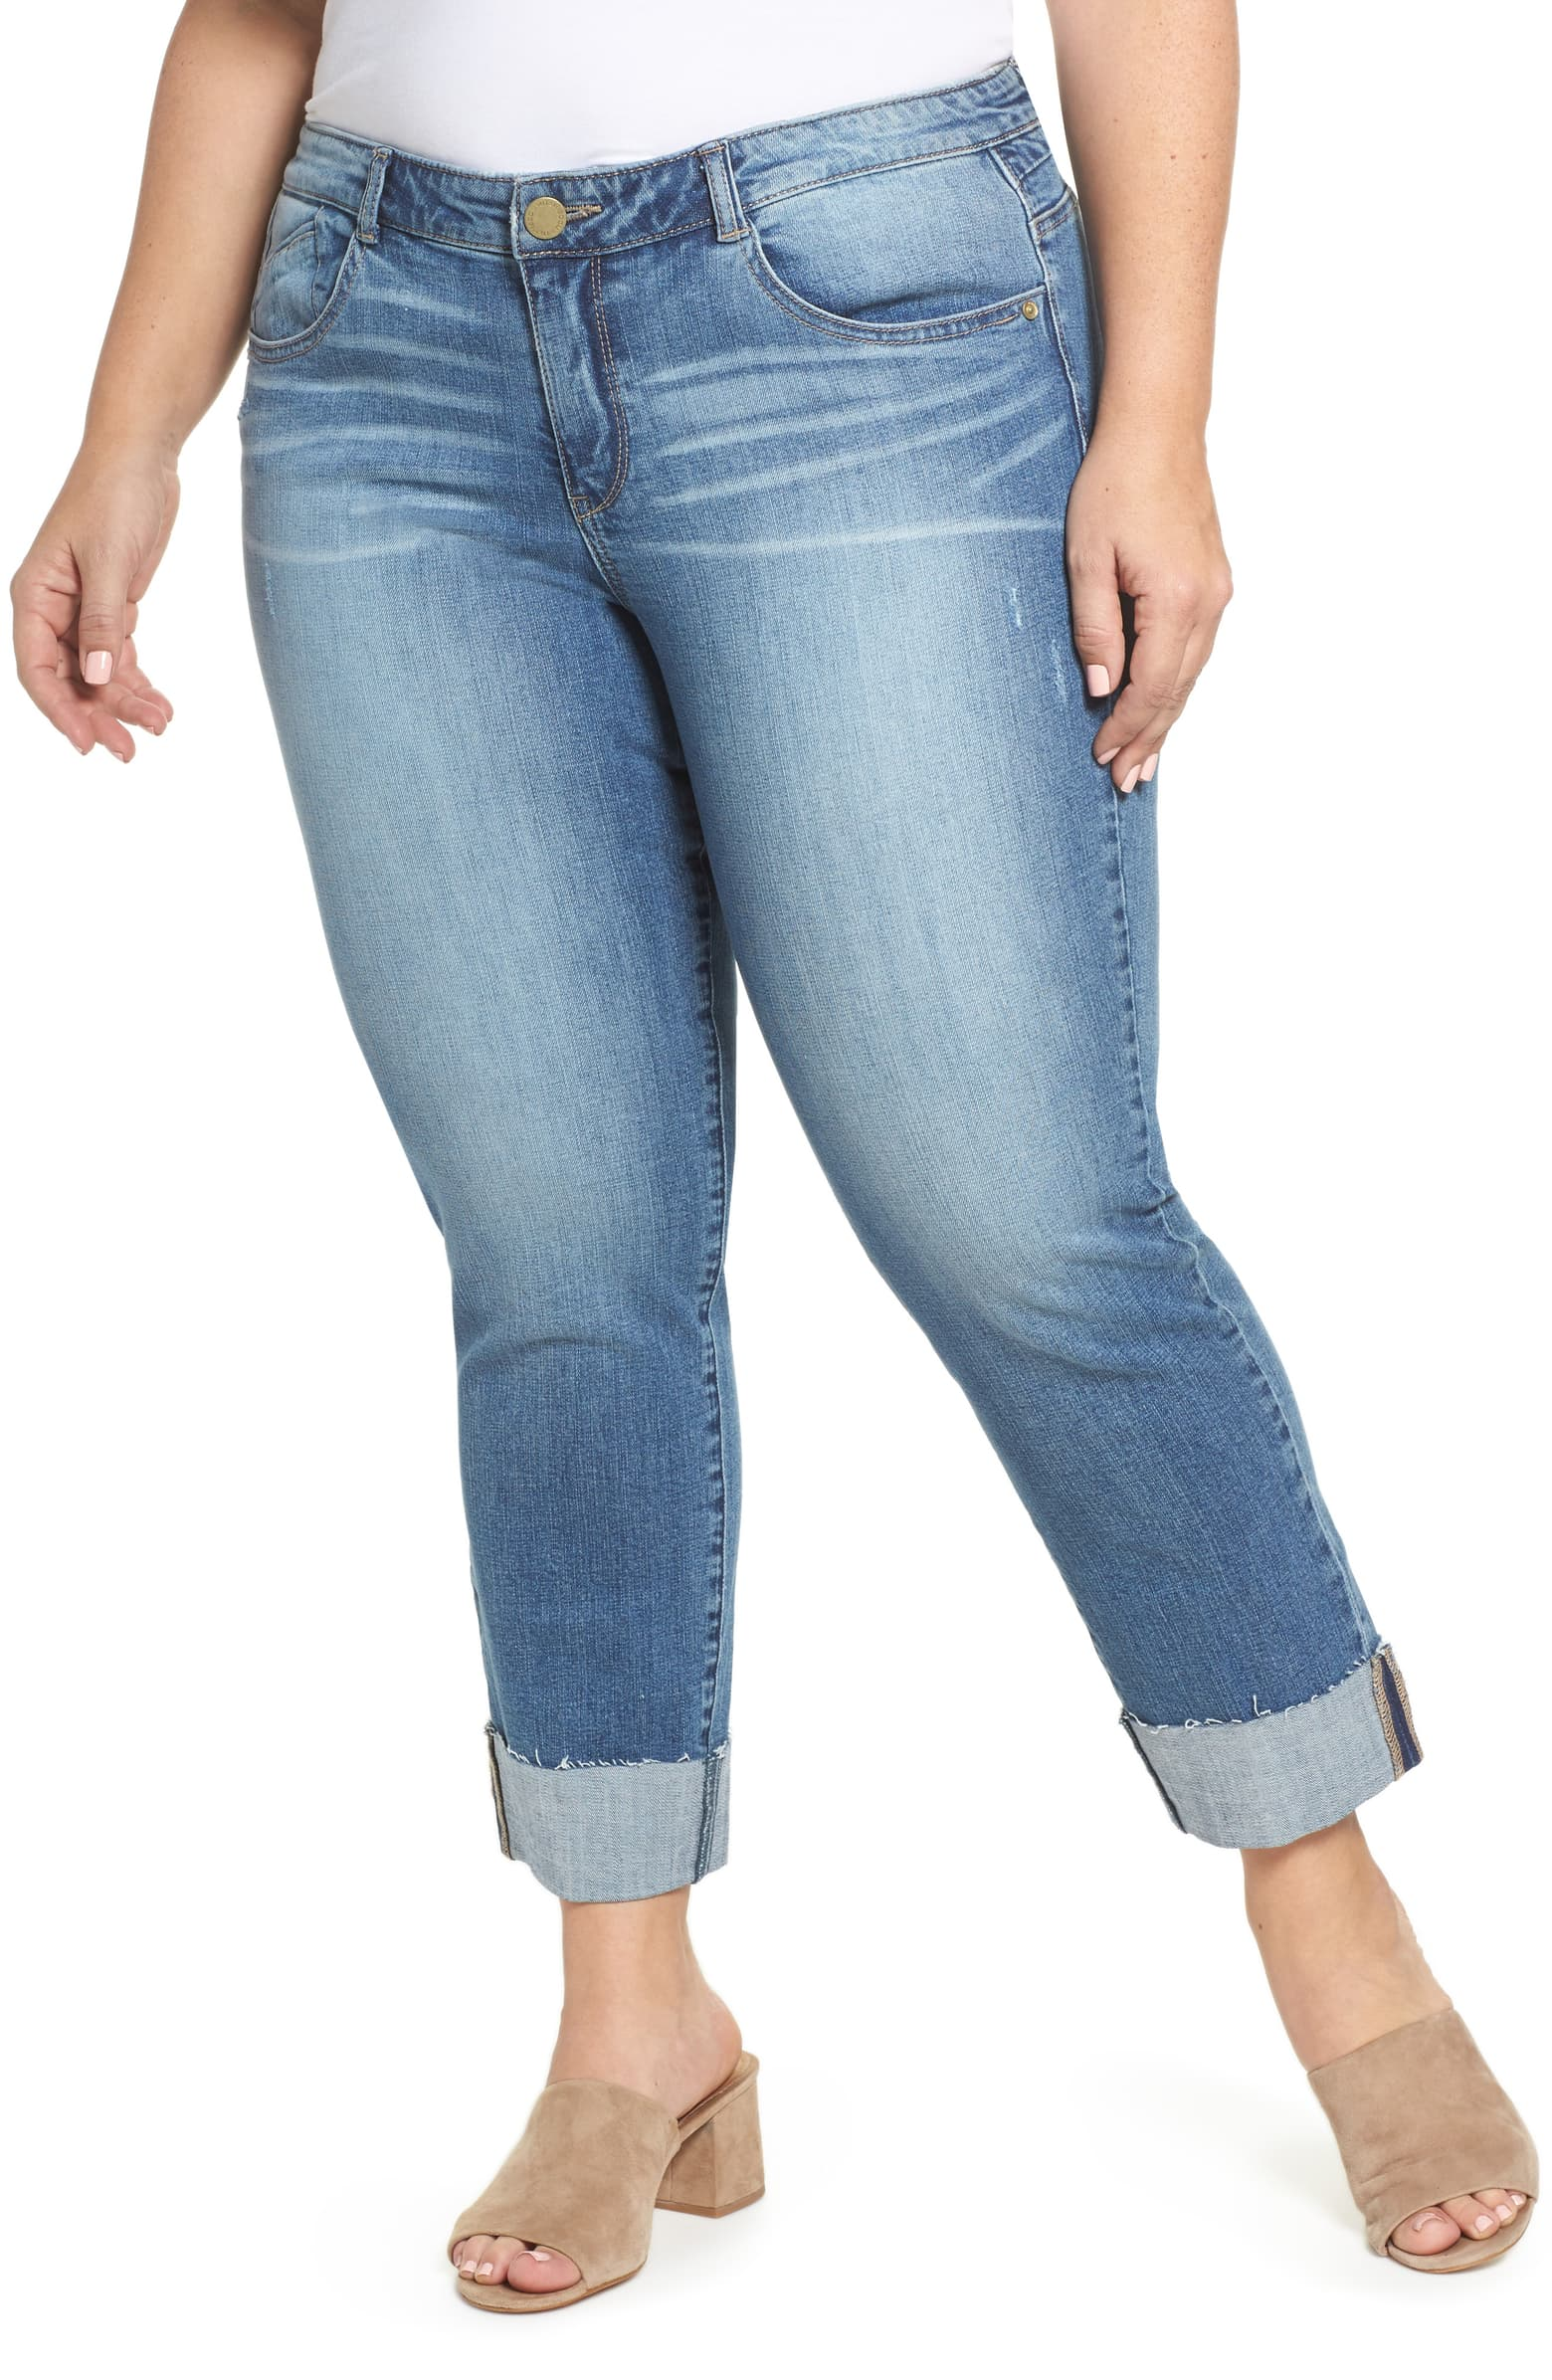 Wit & Wisdom Flex-cellent Boyfriend Jeans   For my curvy friends. These can be found at Nordstrom for $88